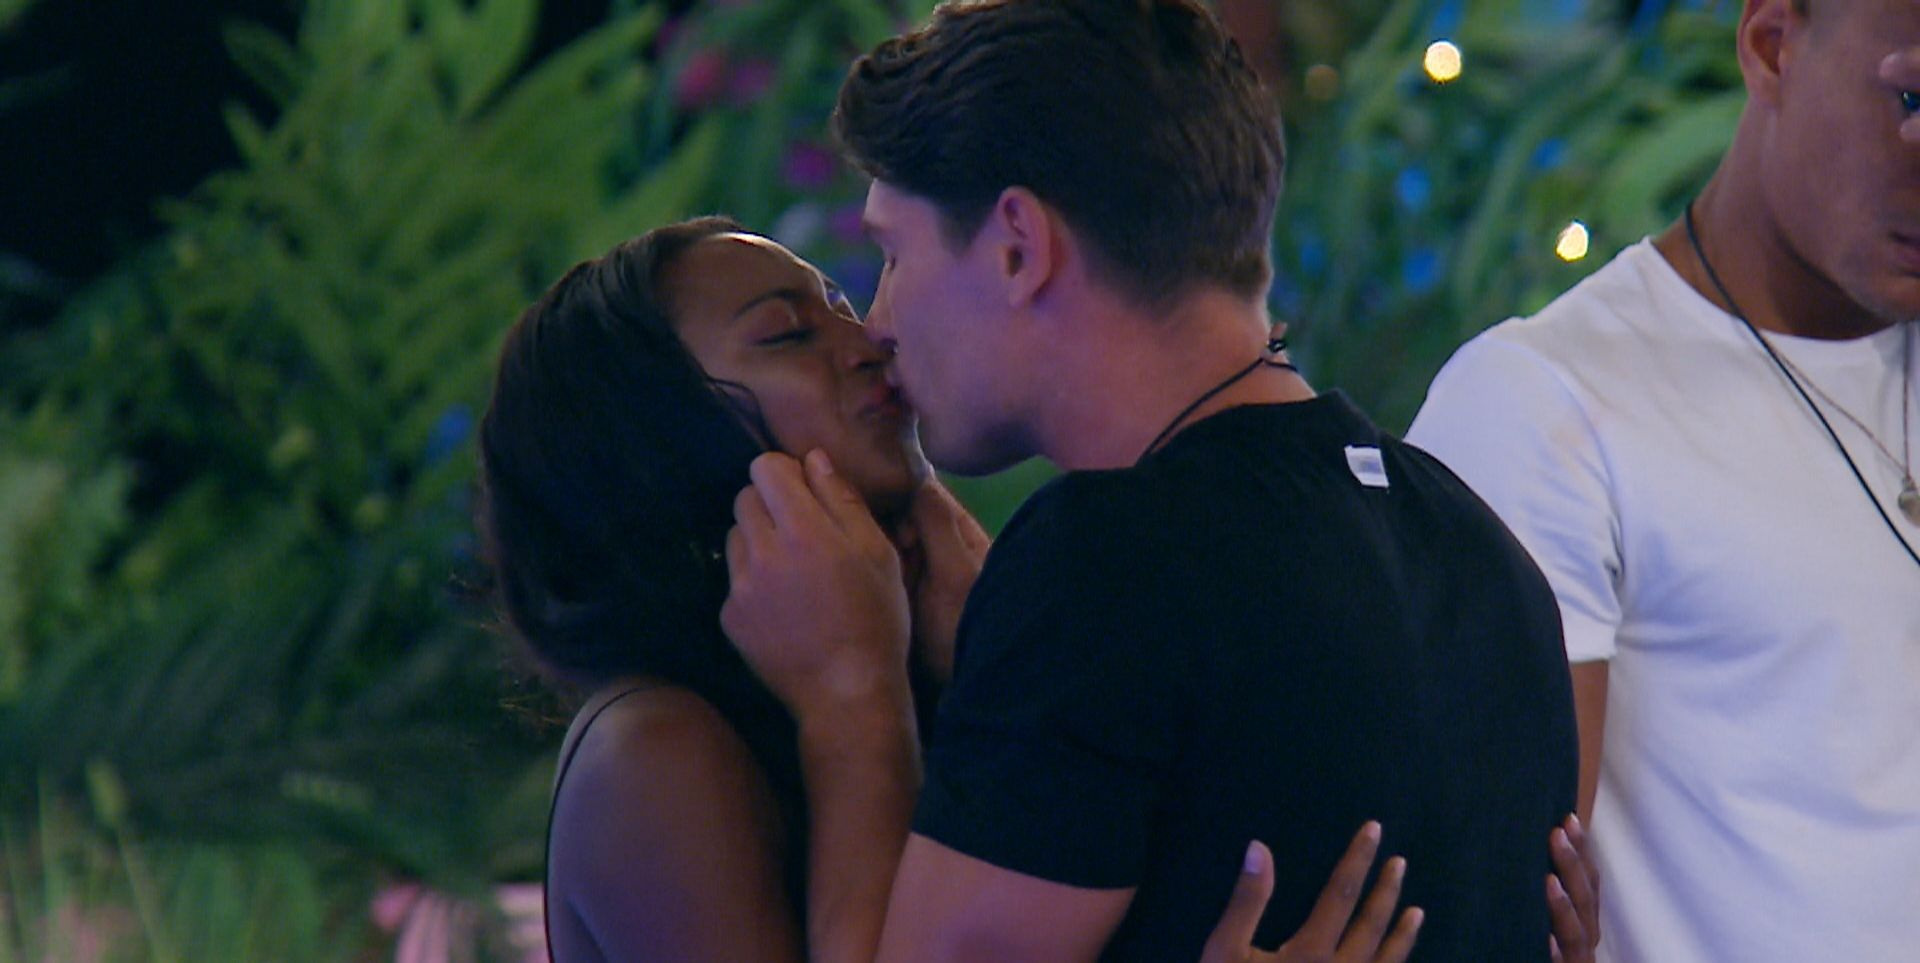 Love Island's Frankie denies cheating on Samira while she was still in the villa